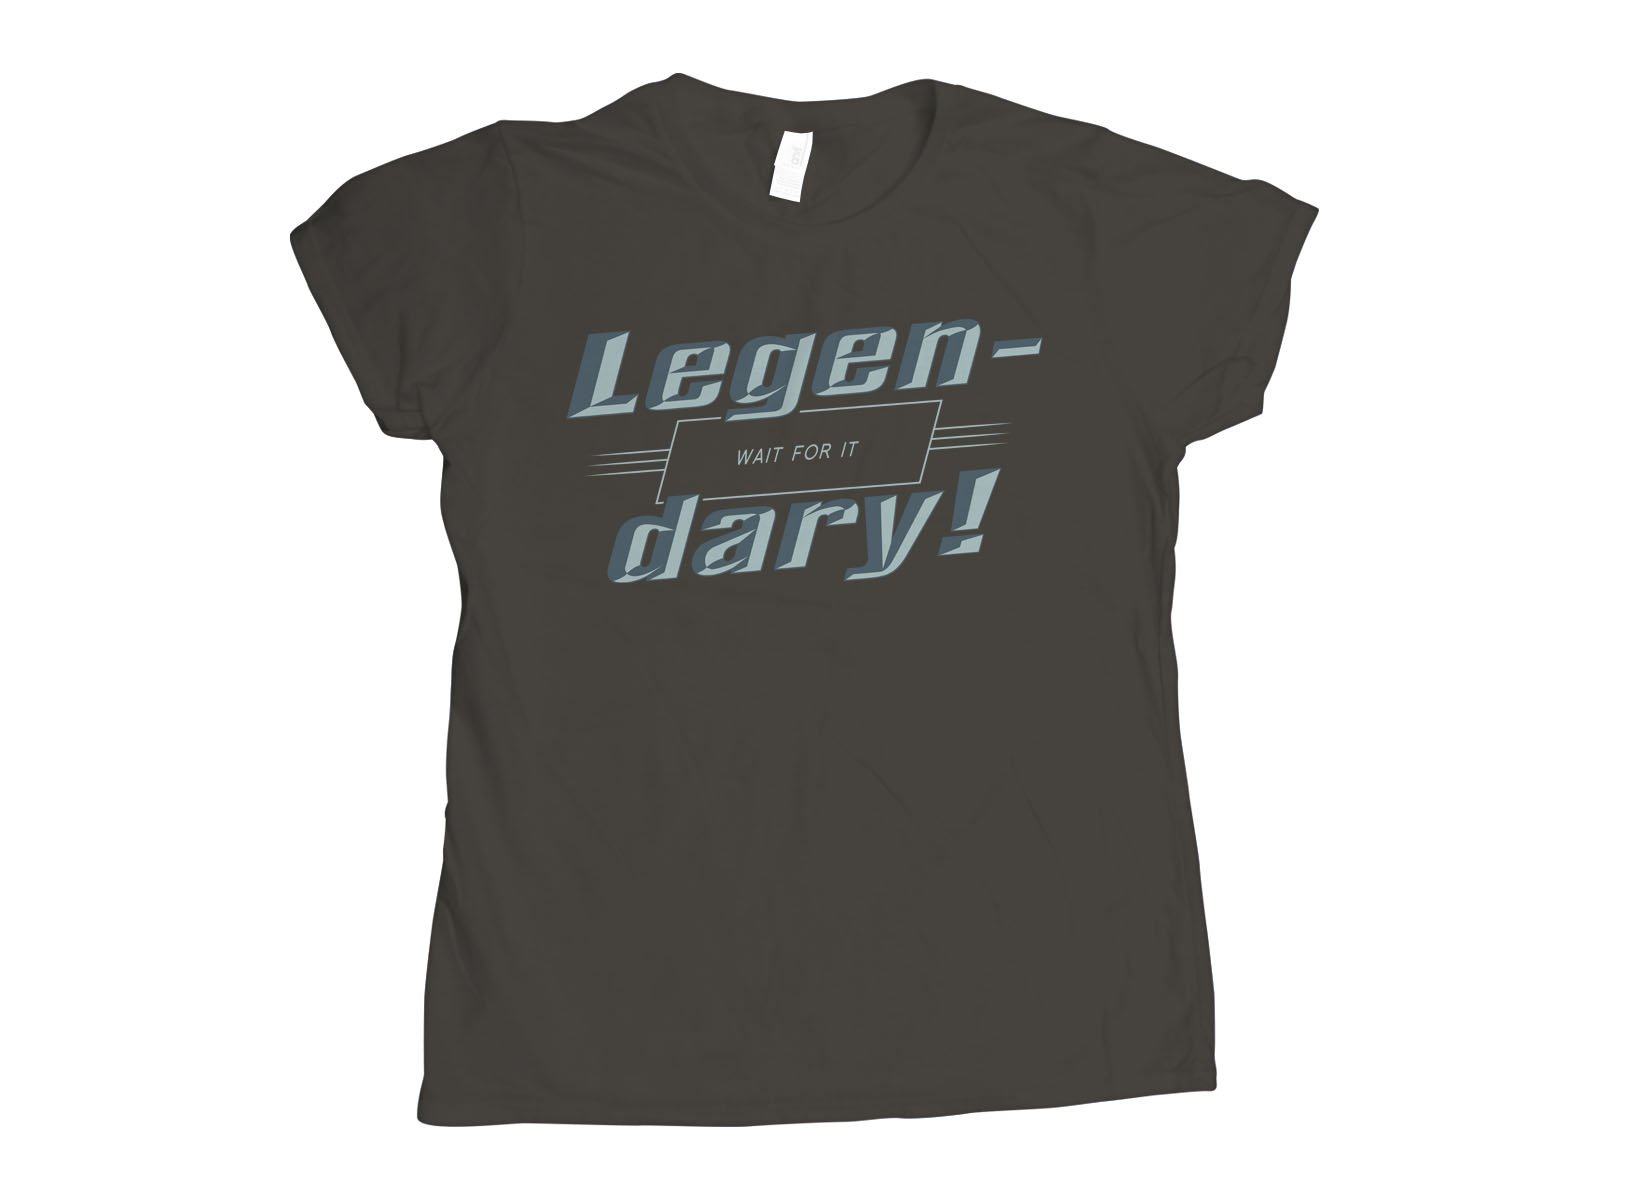 Legen-Dary on Womens T-Shirt